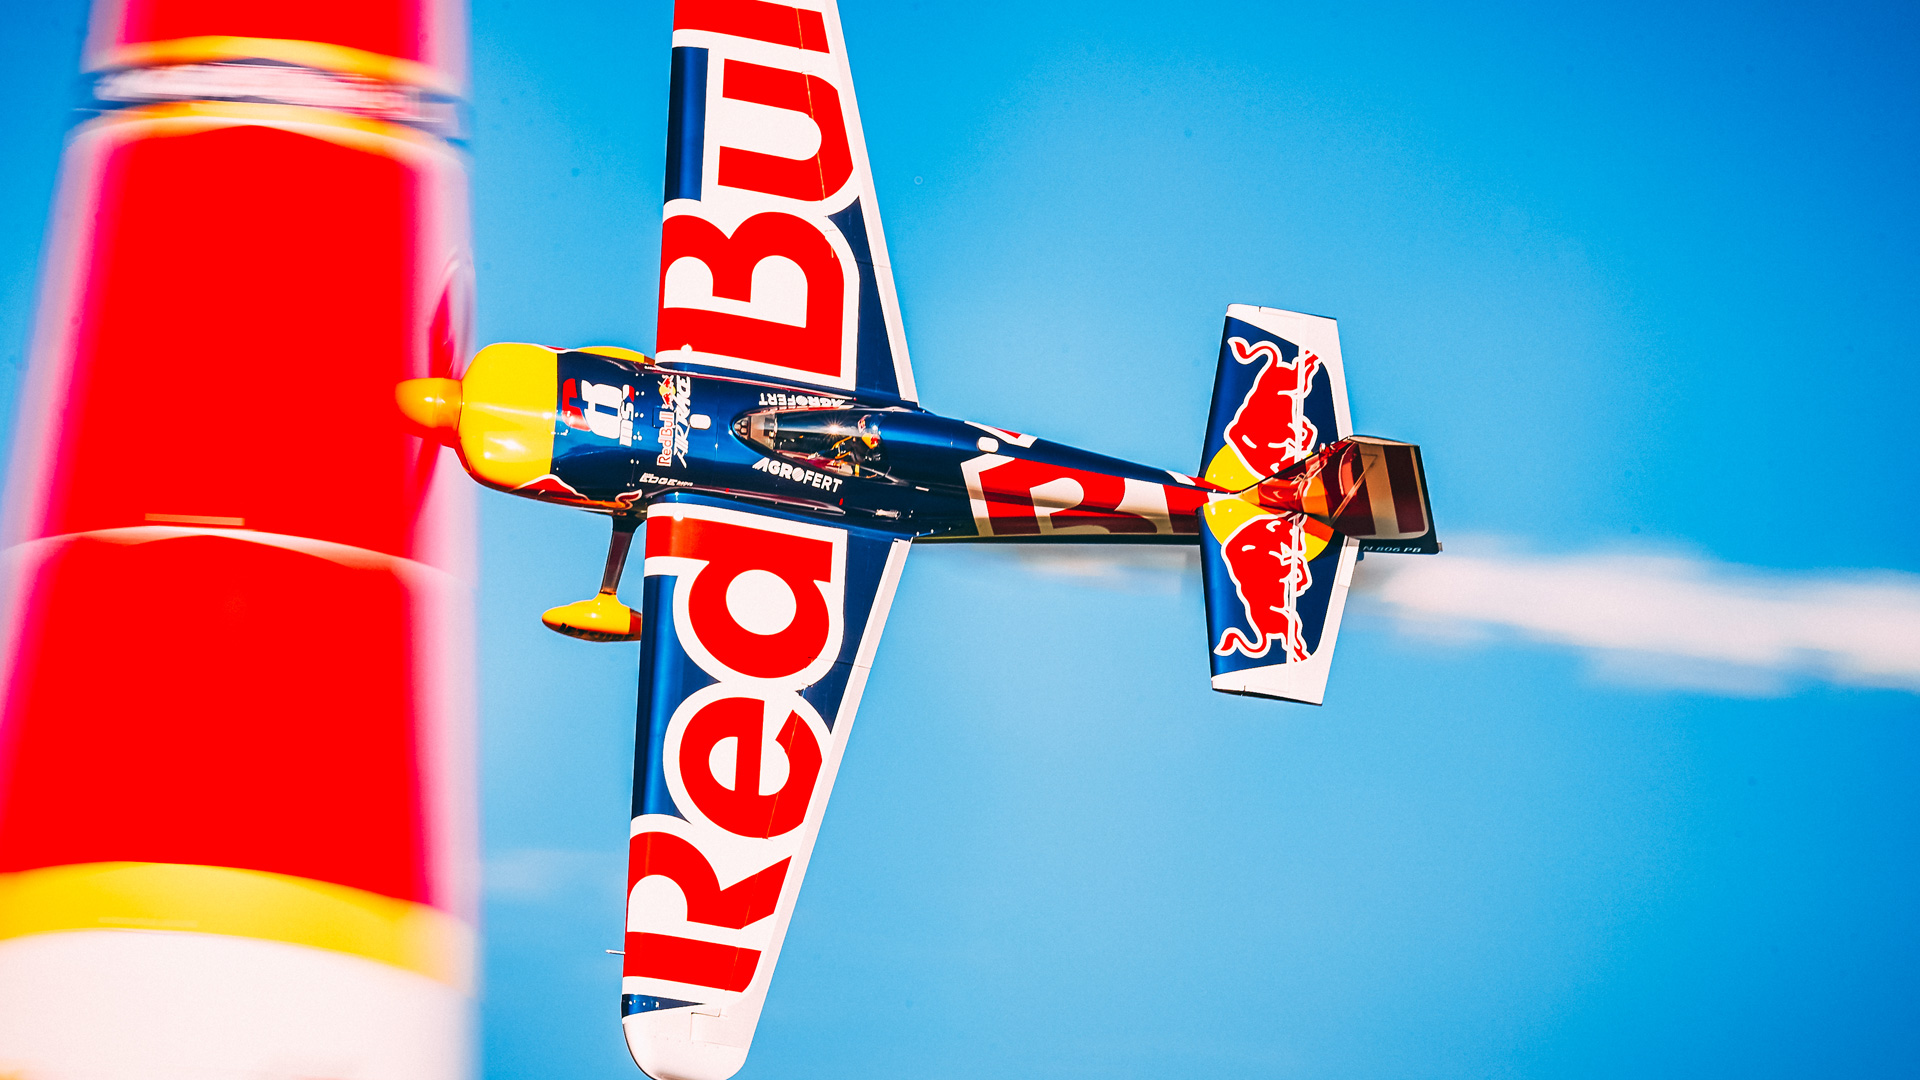 Red Bull Air racing plane flying